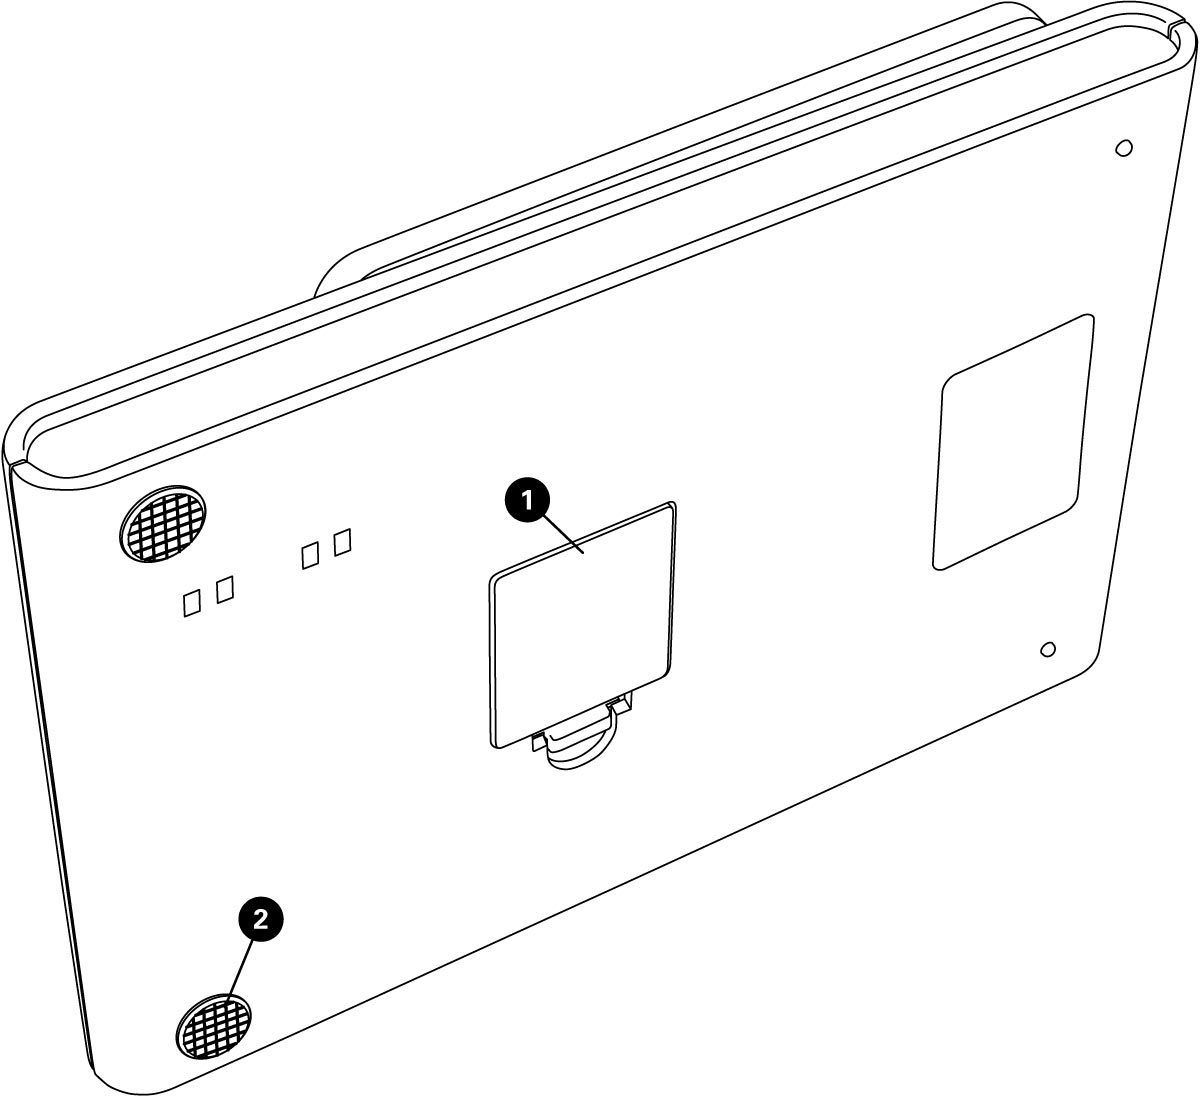 Parts diagram for DS-2 Tabletop Digital Scale, click to enlarge